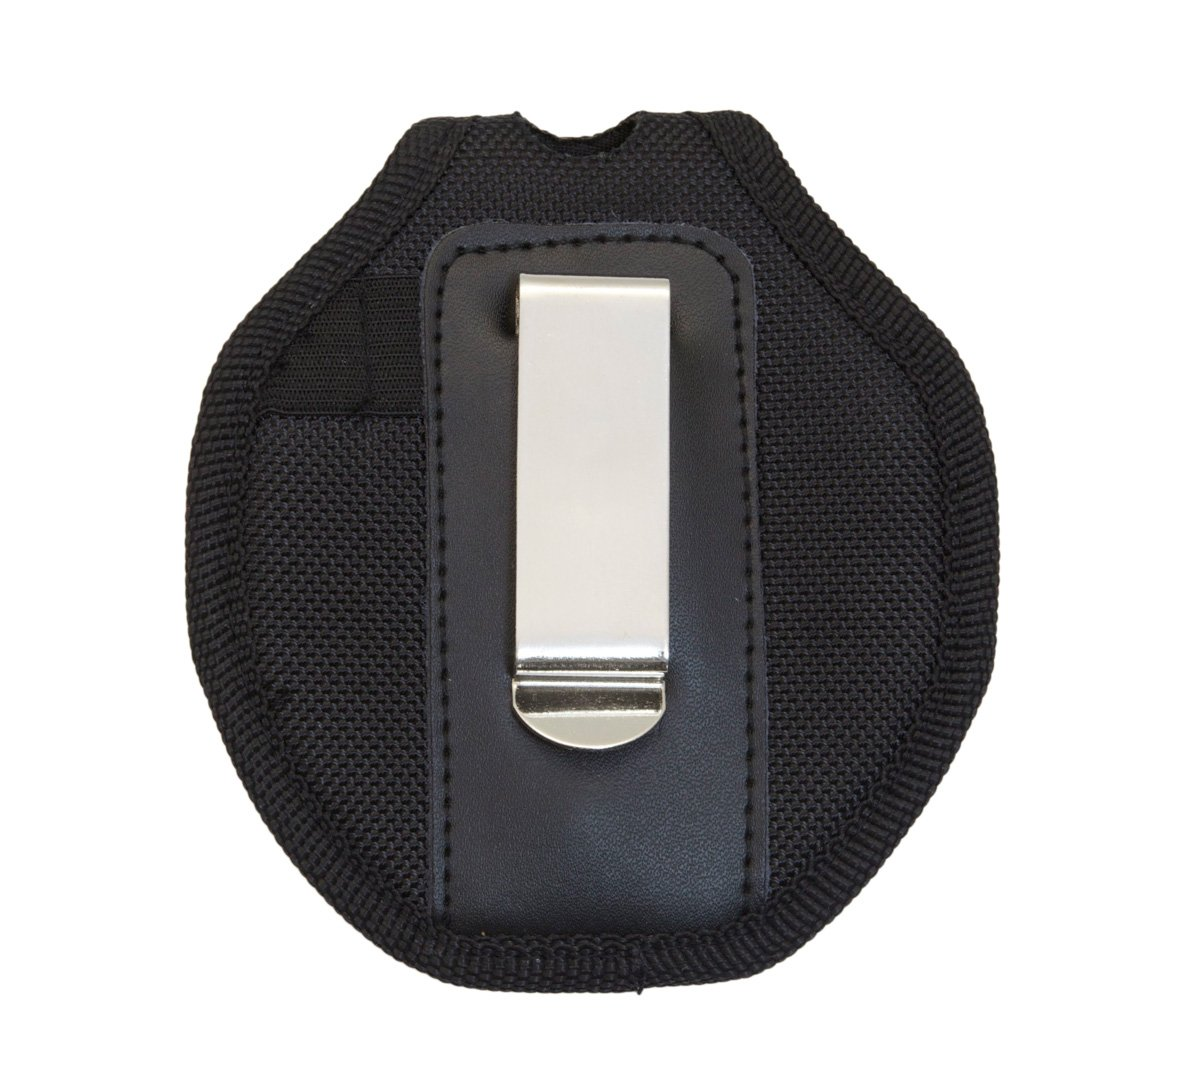 UZI UZI-CUFFCASE Nylon Reinforced Handcuff Case with Metal Pocket Clip and Key Holder, Black by CampCo